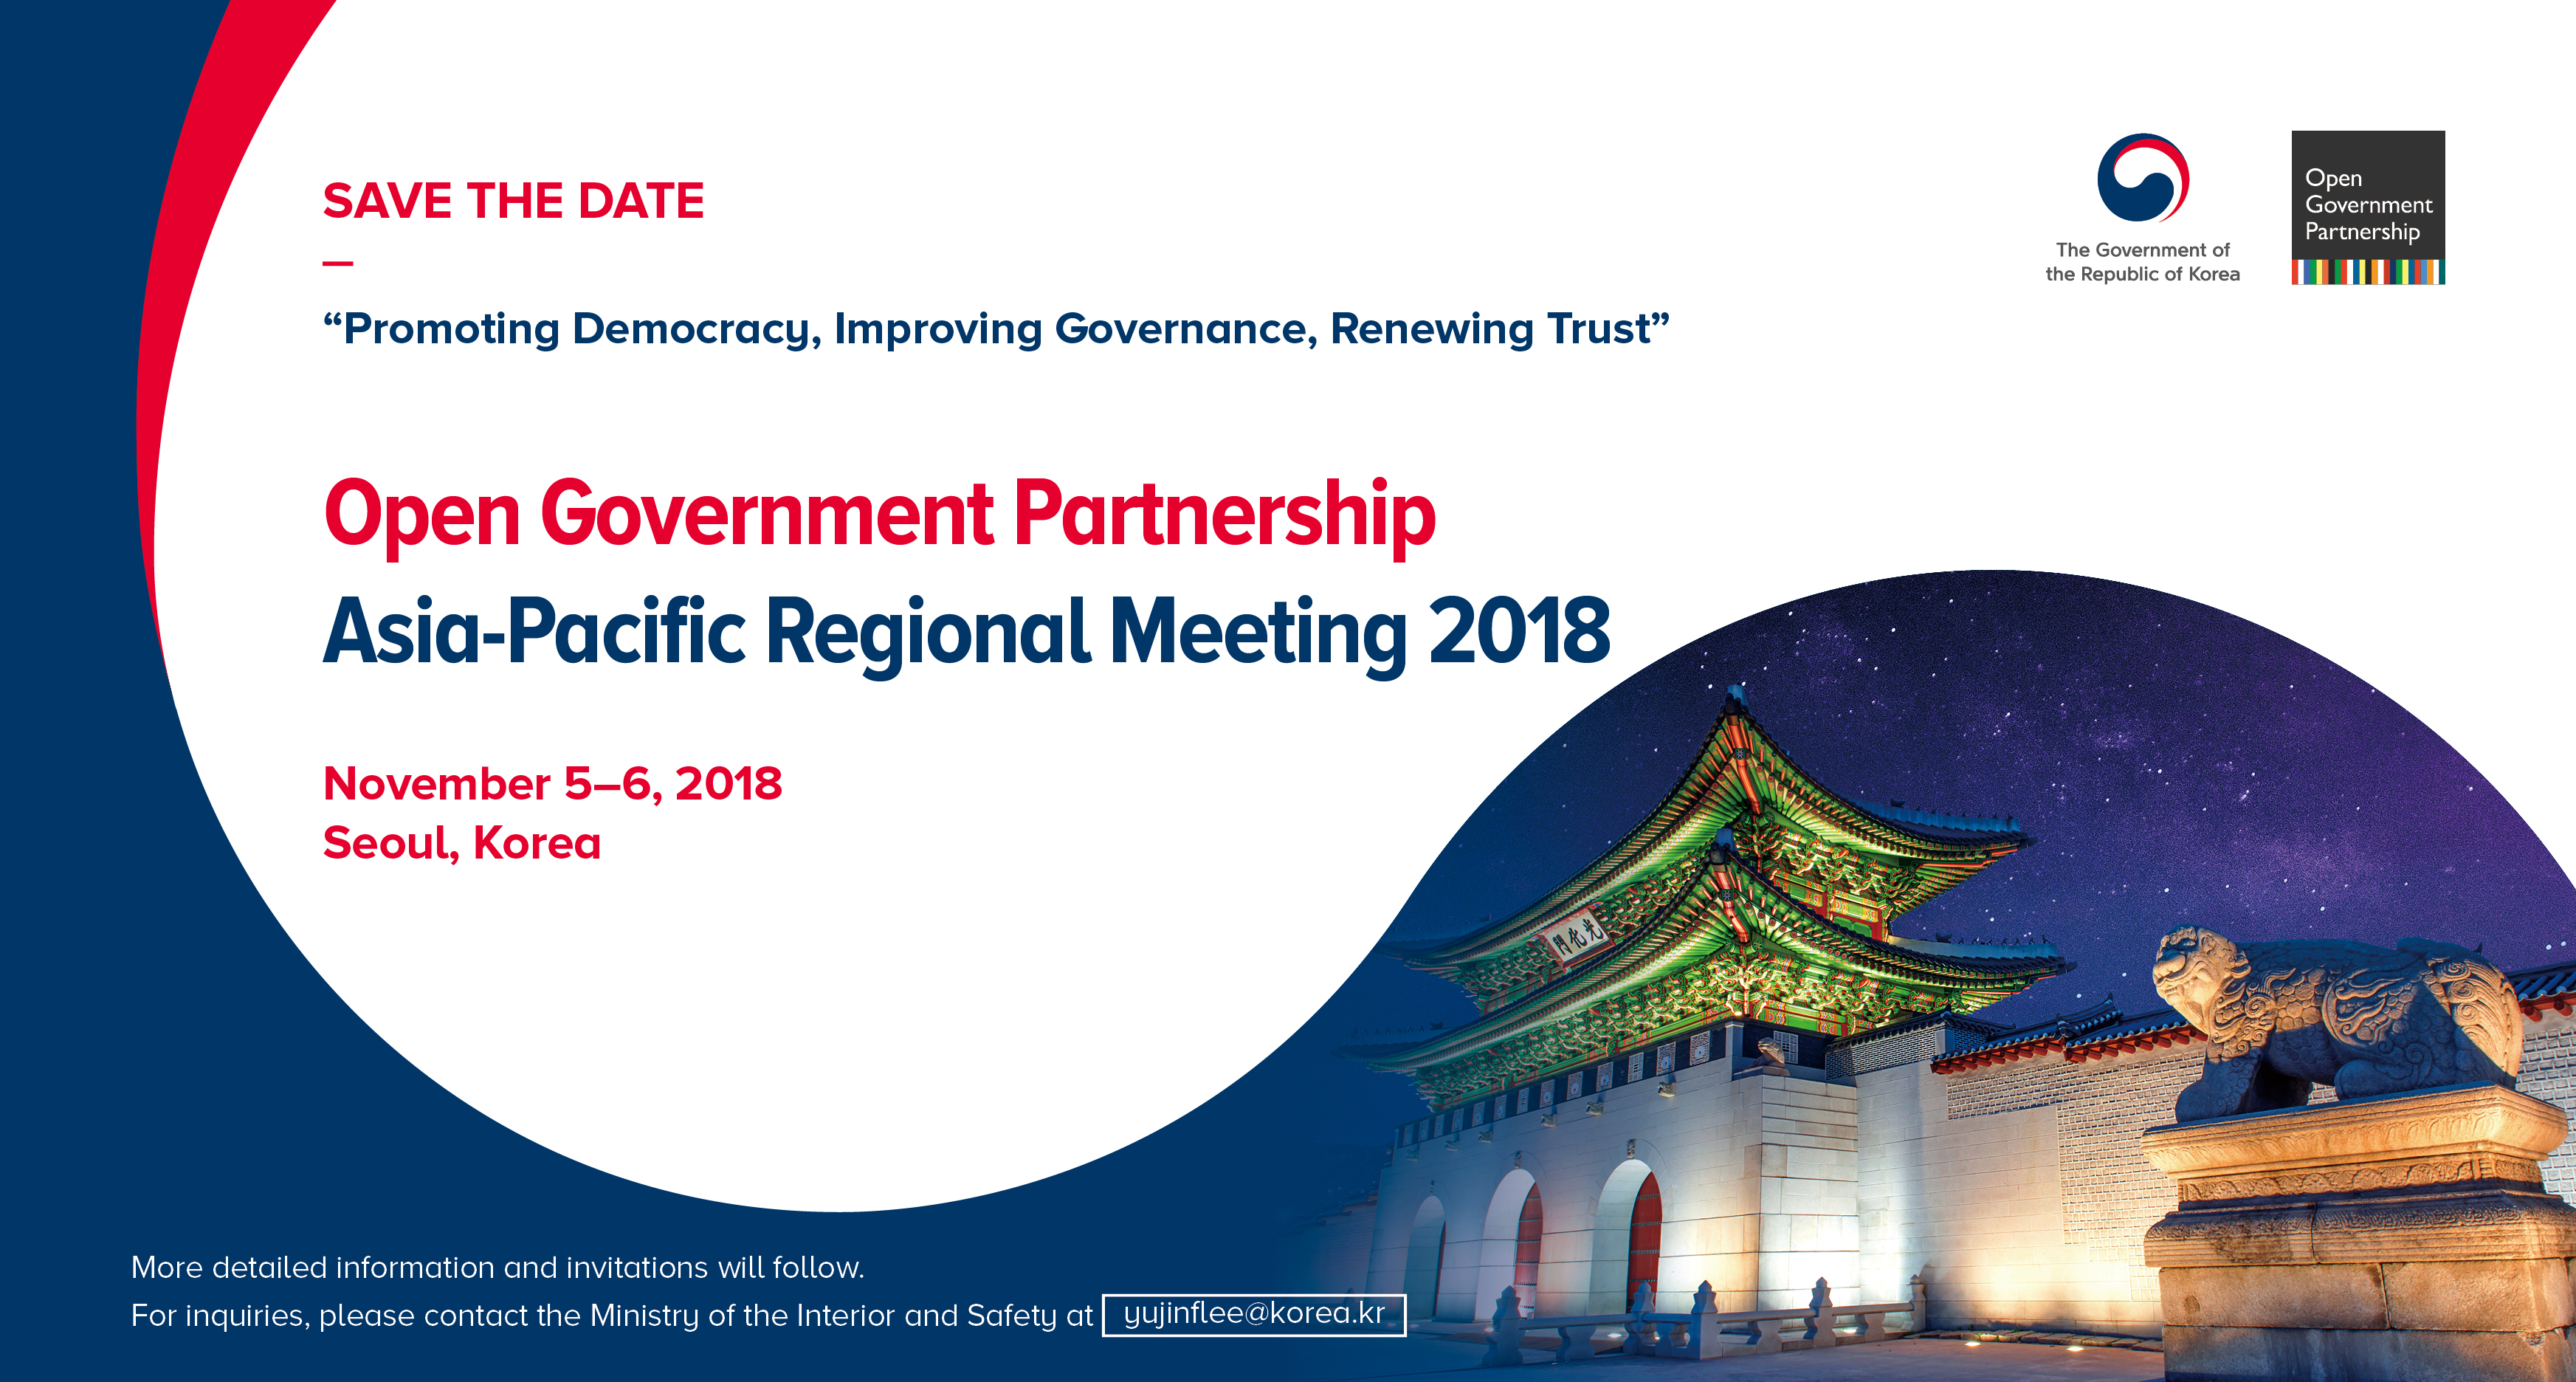 Asia-Pacific Regional Meeting 2018